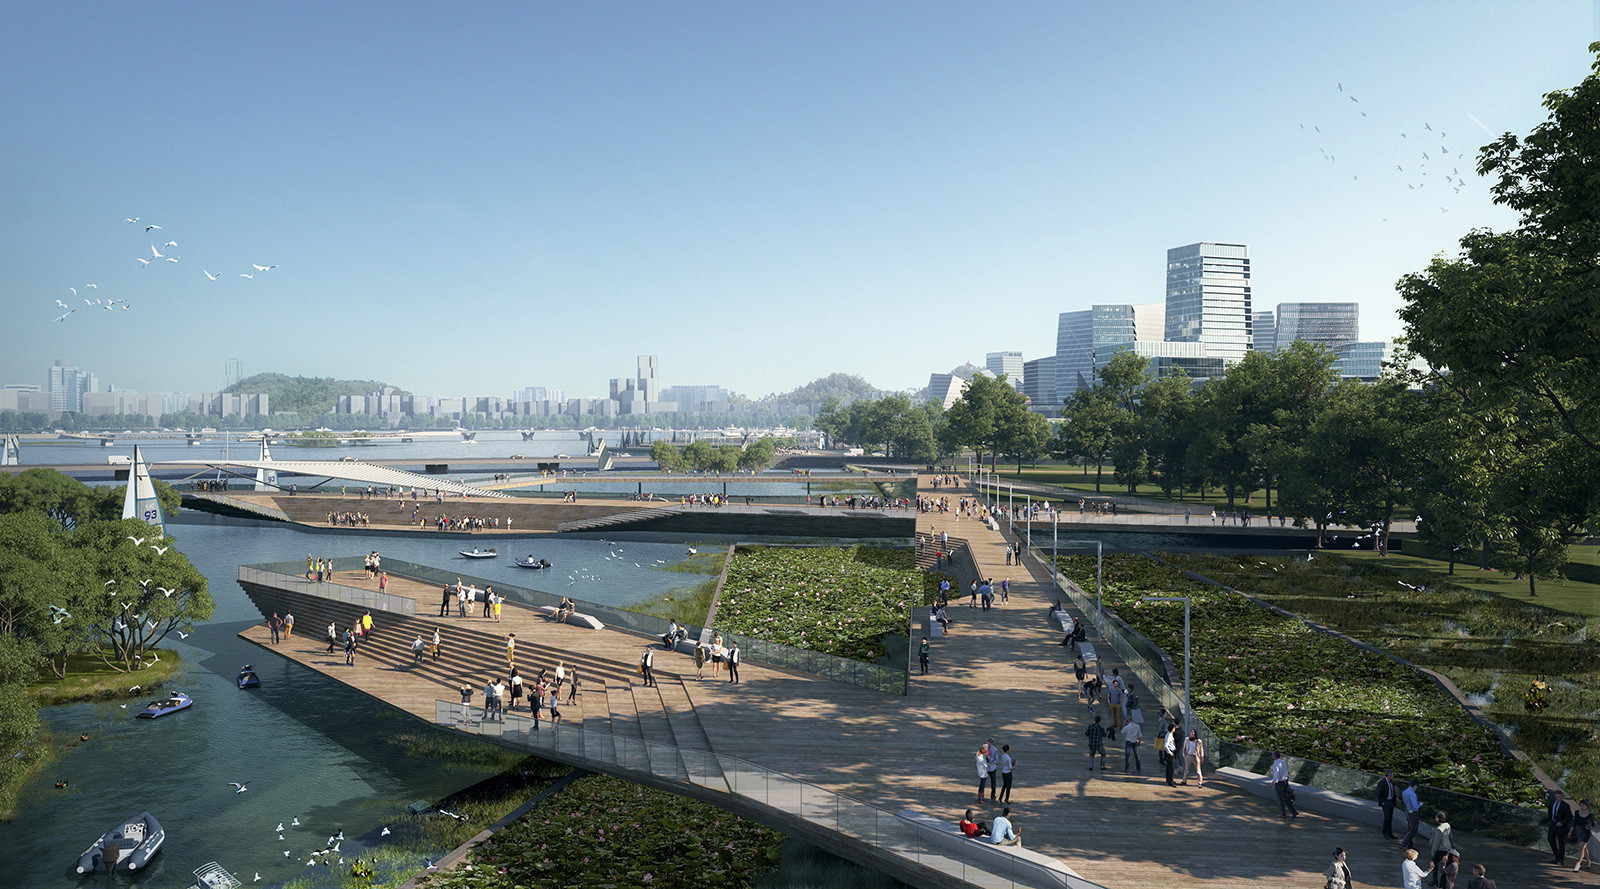 Render showing Net City as planned, including a fresh water pier.